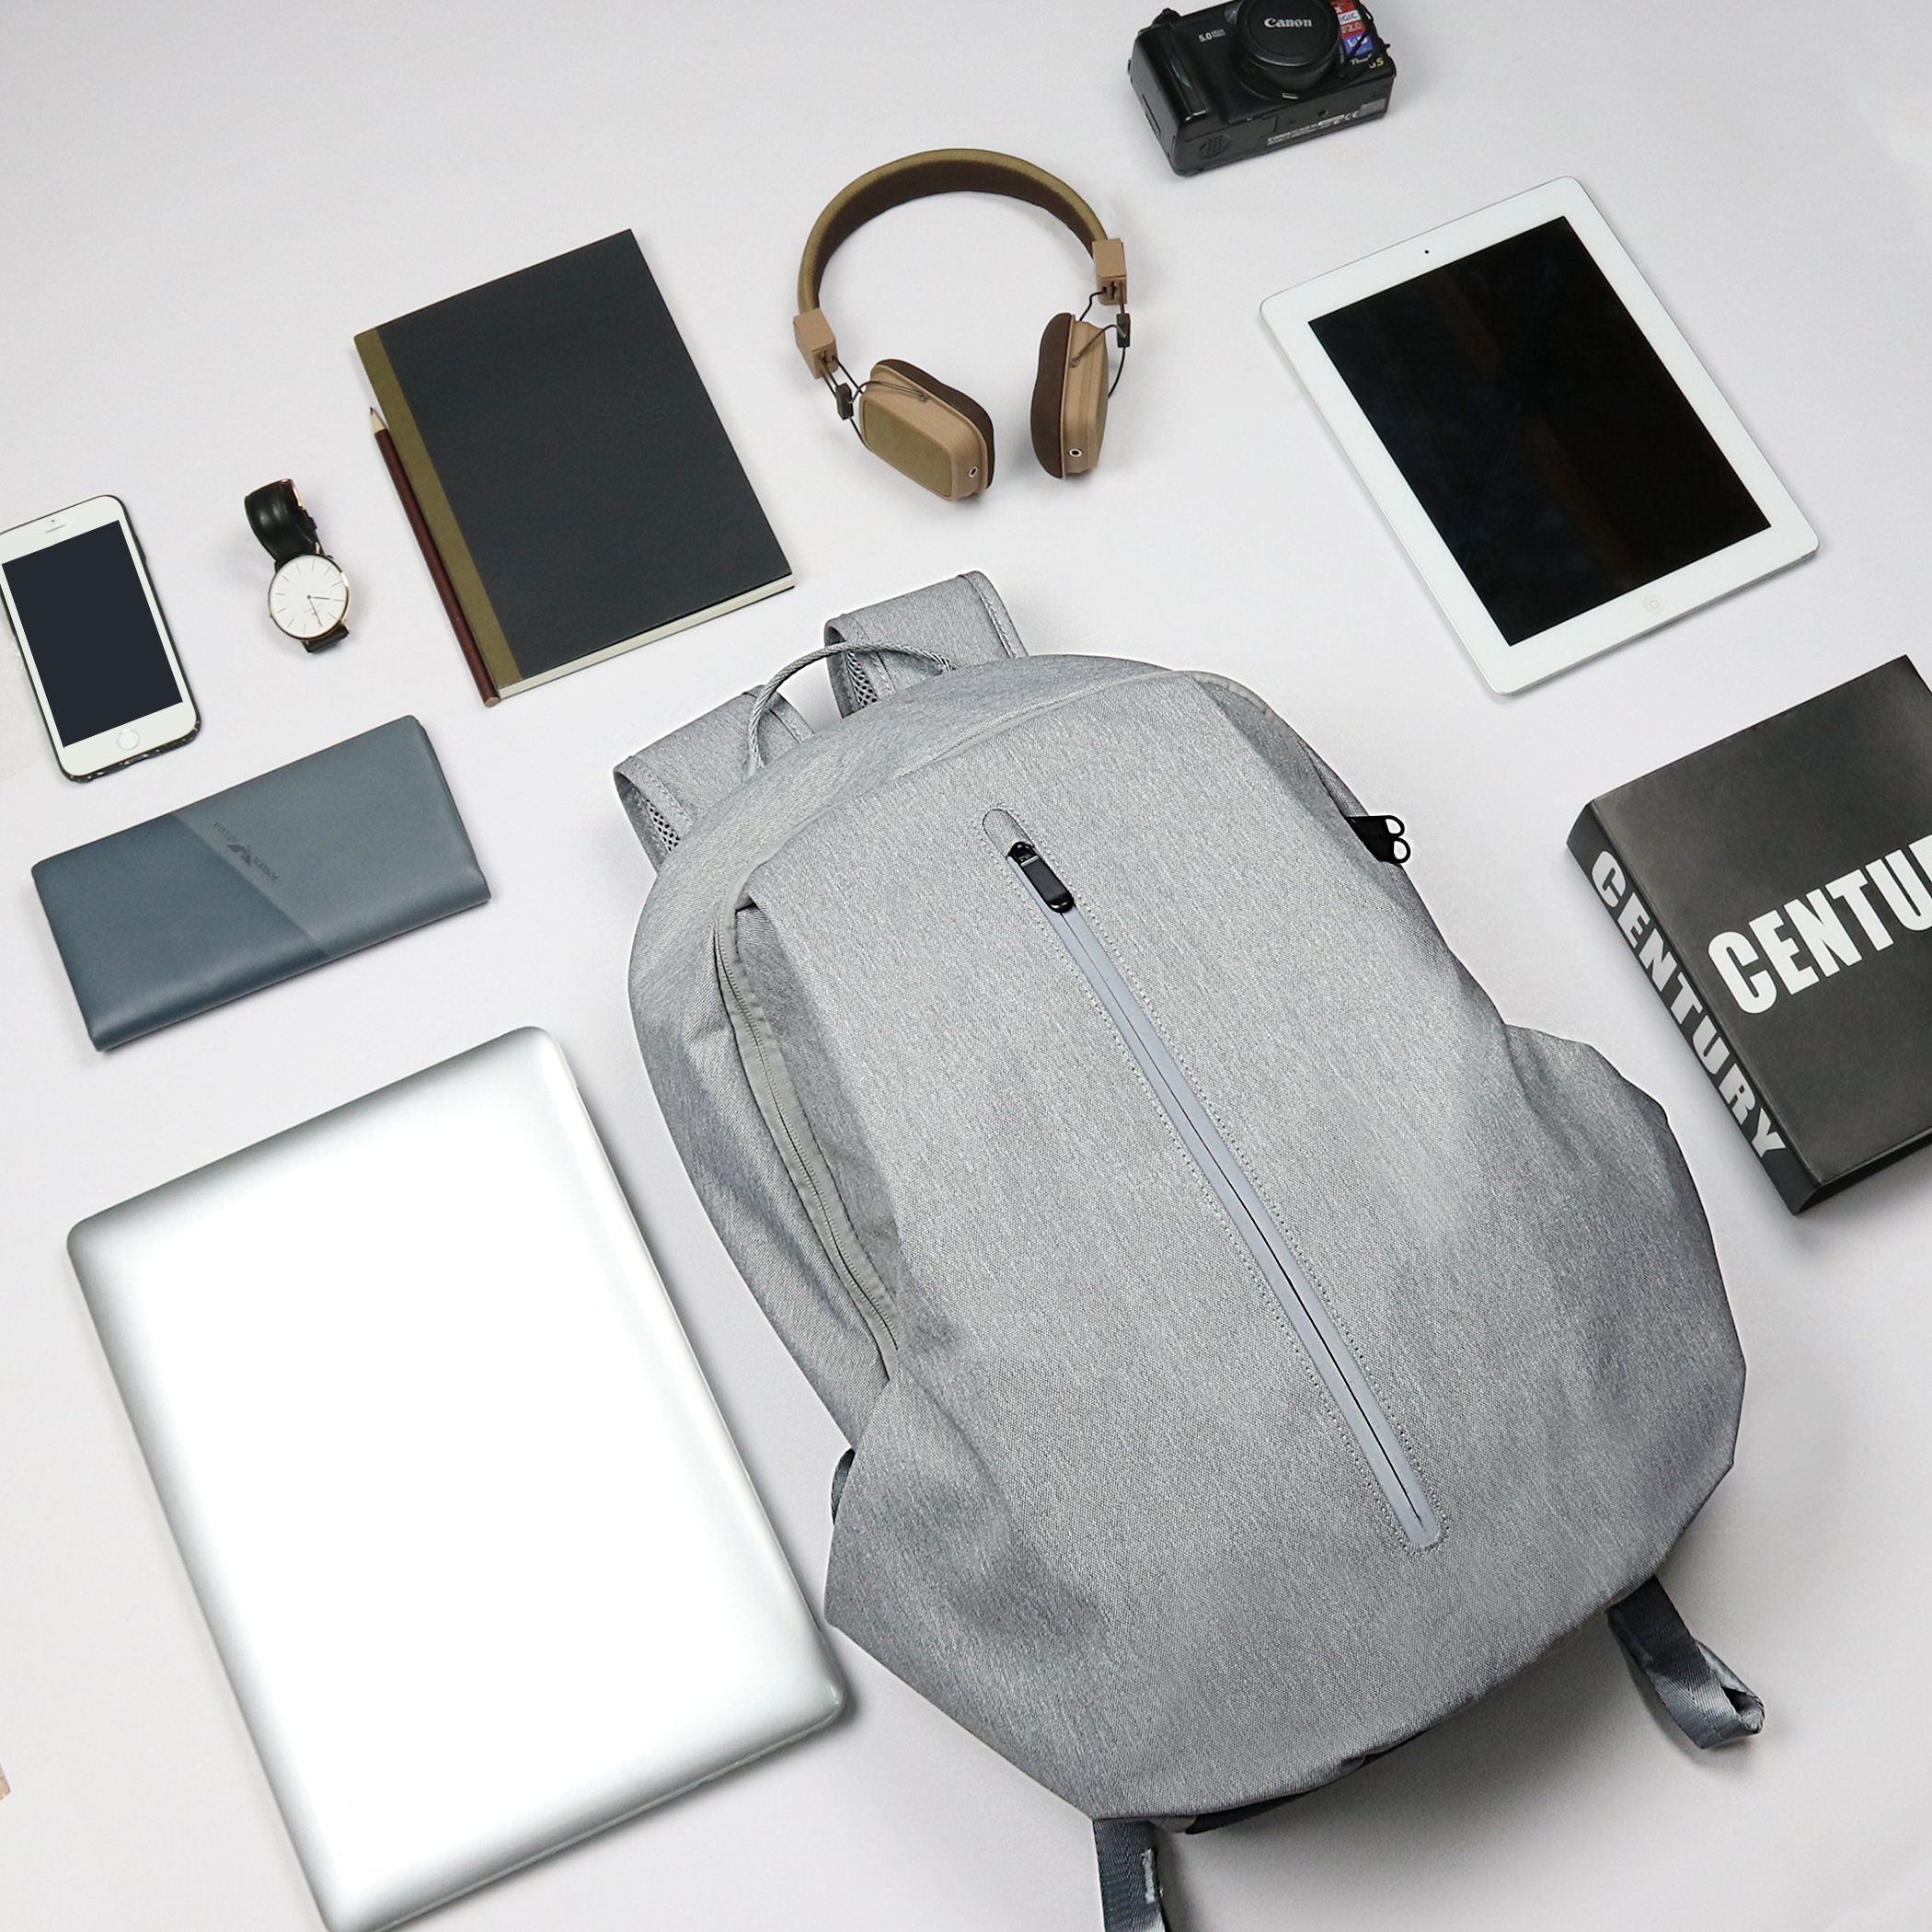 Tektalk Business Anti-theft Multifunctional Laptop Backpack, with USB Cable and Coded Lock, Durable & Lightweight, Suitable for Laptops up to 15.6 inches, for School / Travel / Work (Light Gray) by Tektalk (Image #8)